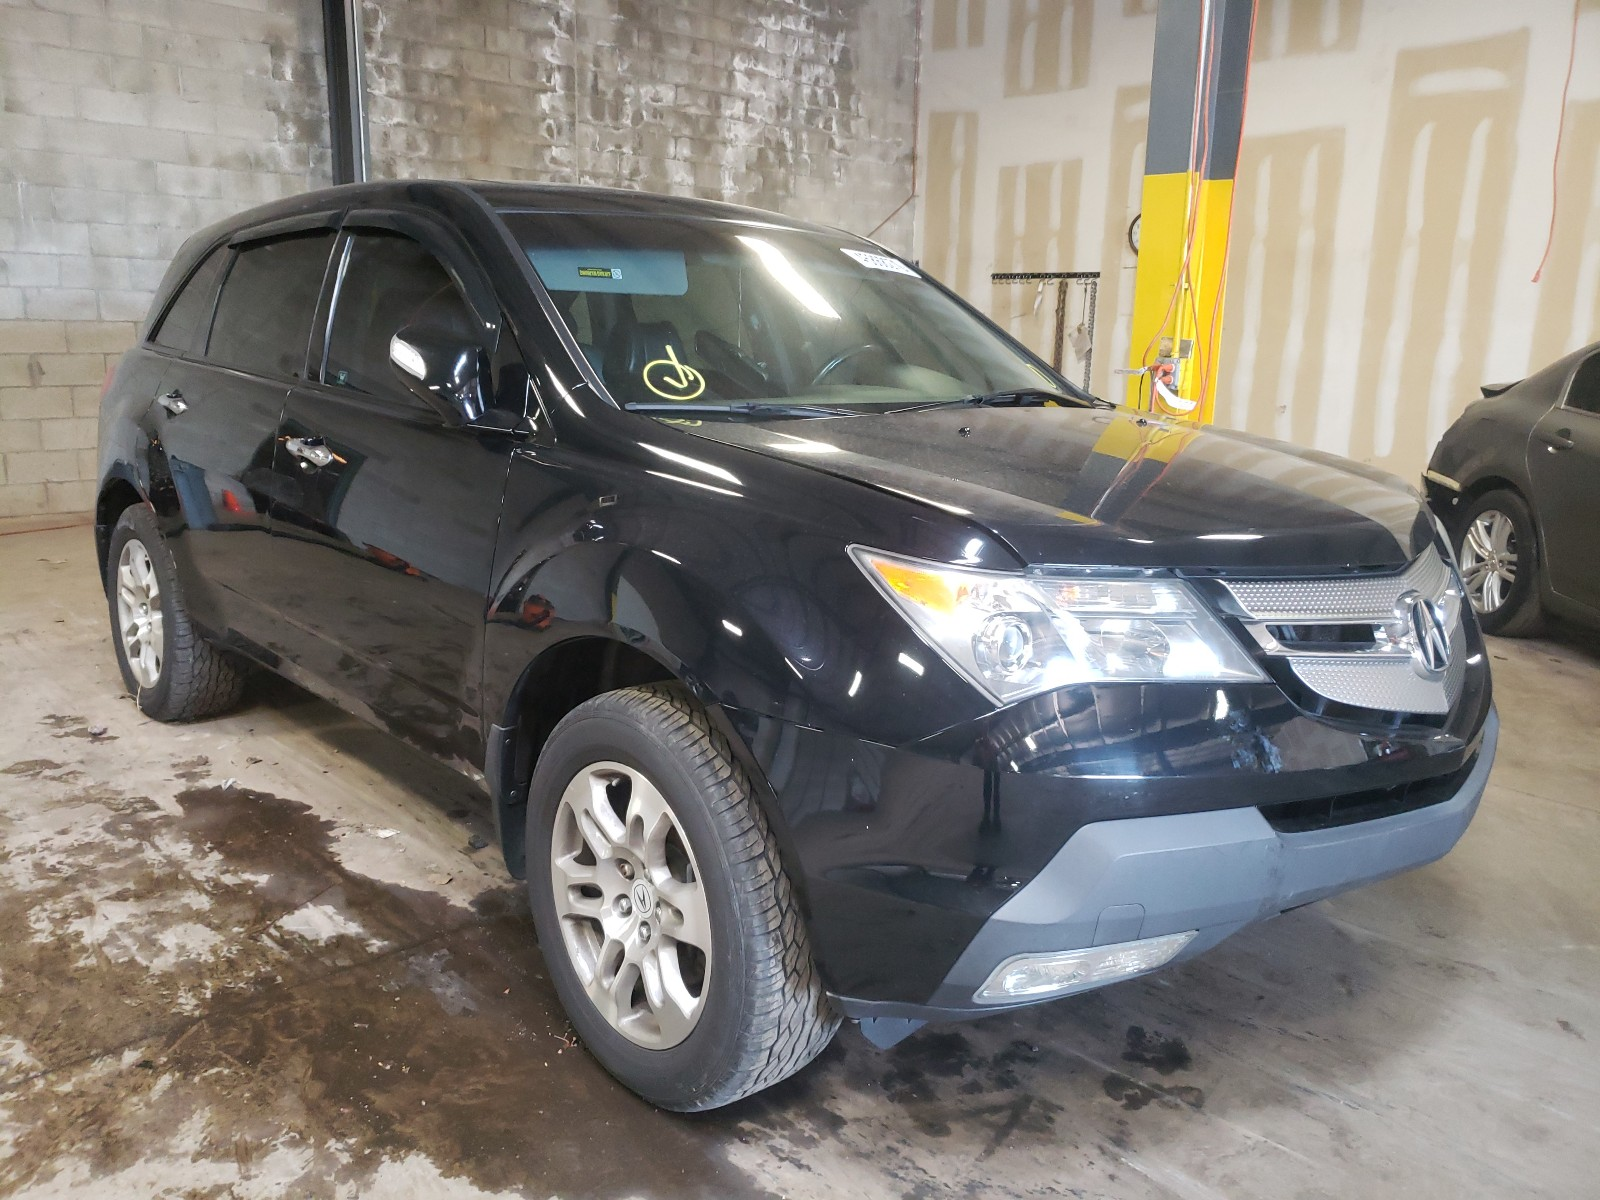 2009 Acura Mdx For Sale At Copart Chalfont Pa Lot 45868270 Salvagereseller Com